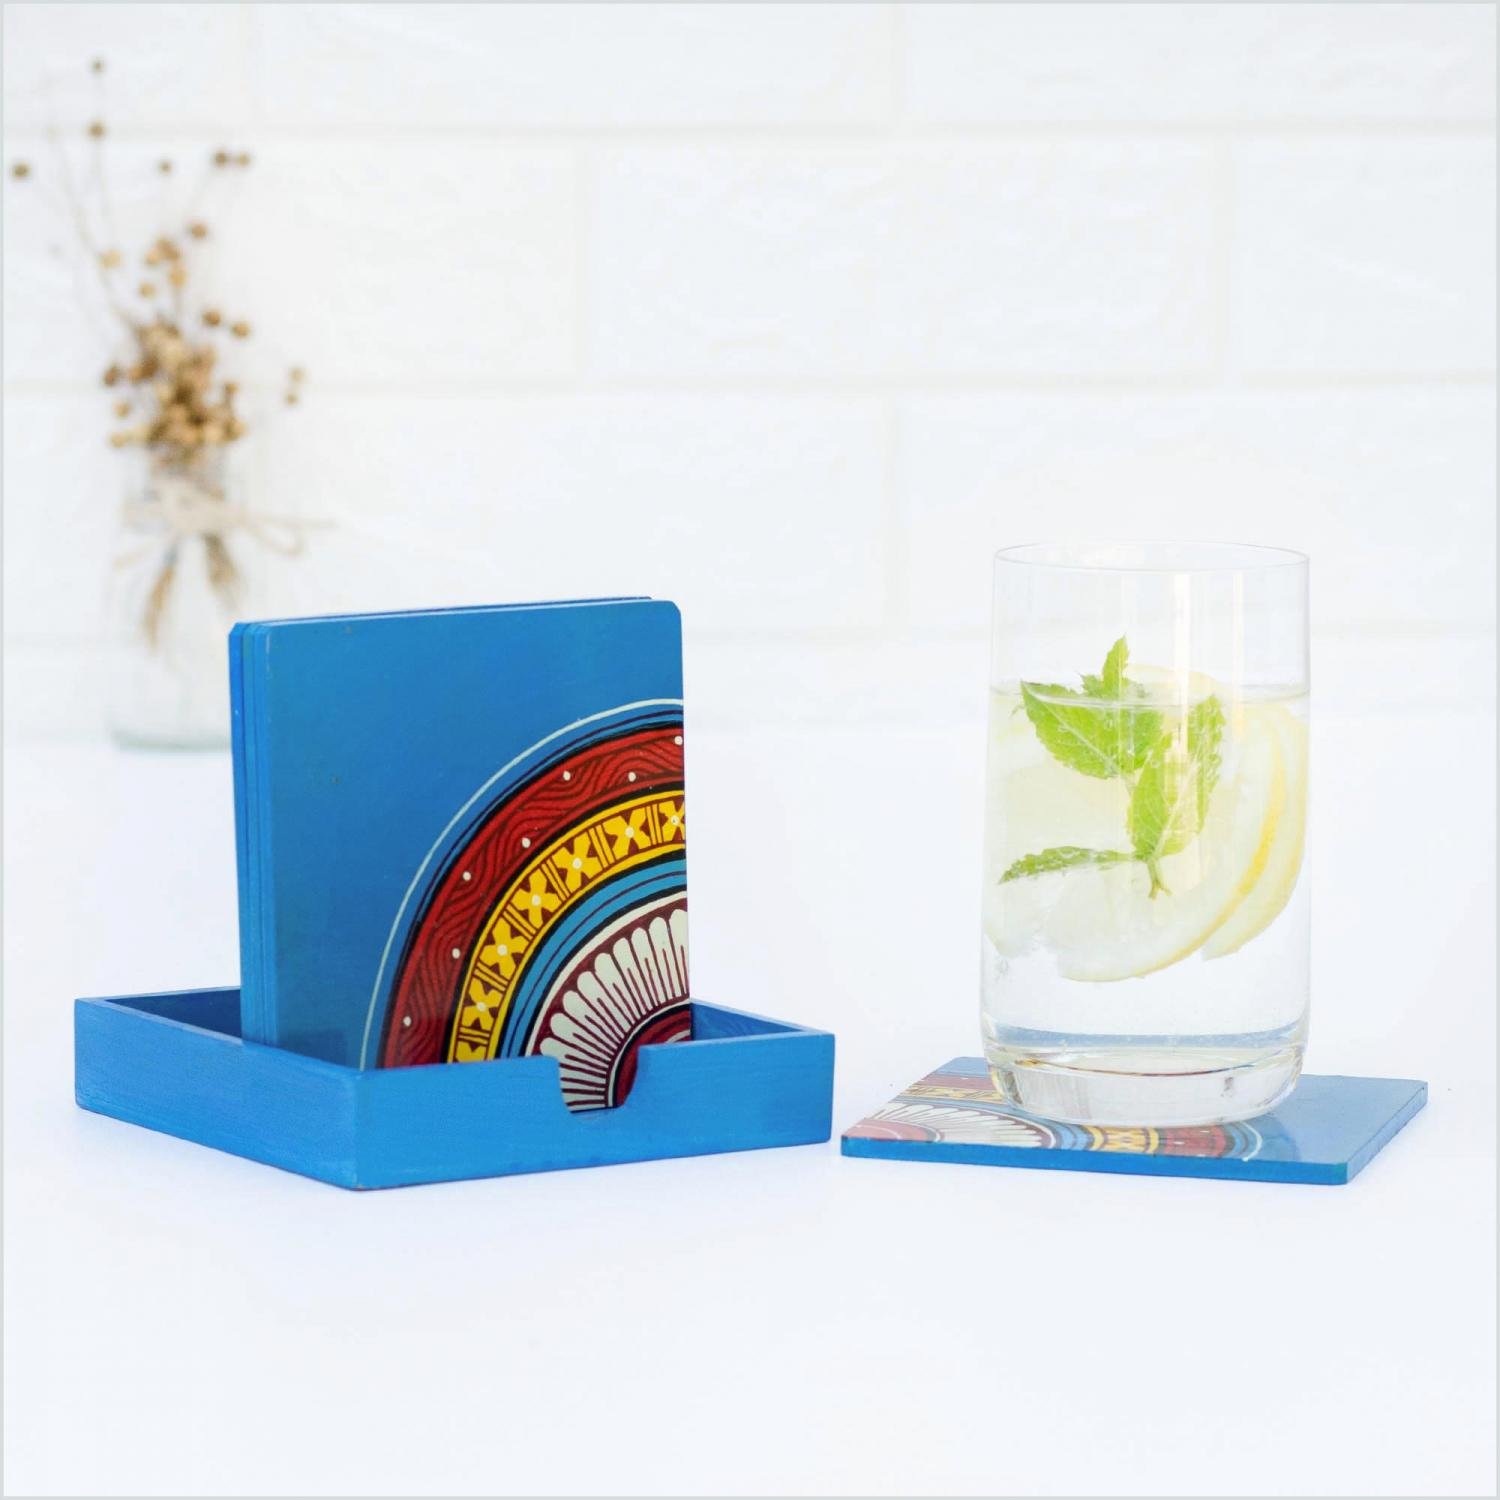 Blue coasters with red, yellow and blue motifs standing on a blue holder on a white surface next to a glass of water with mint and lemon standing on a coaster and a vase of dried flowers in the background